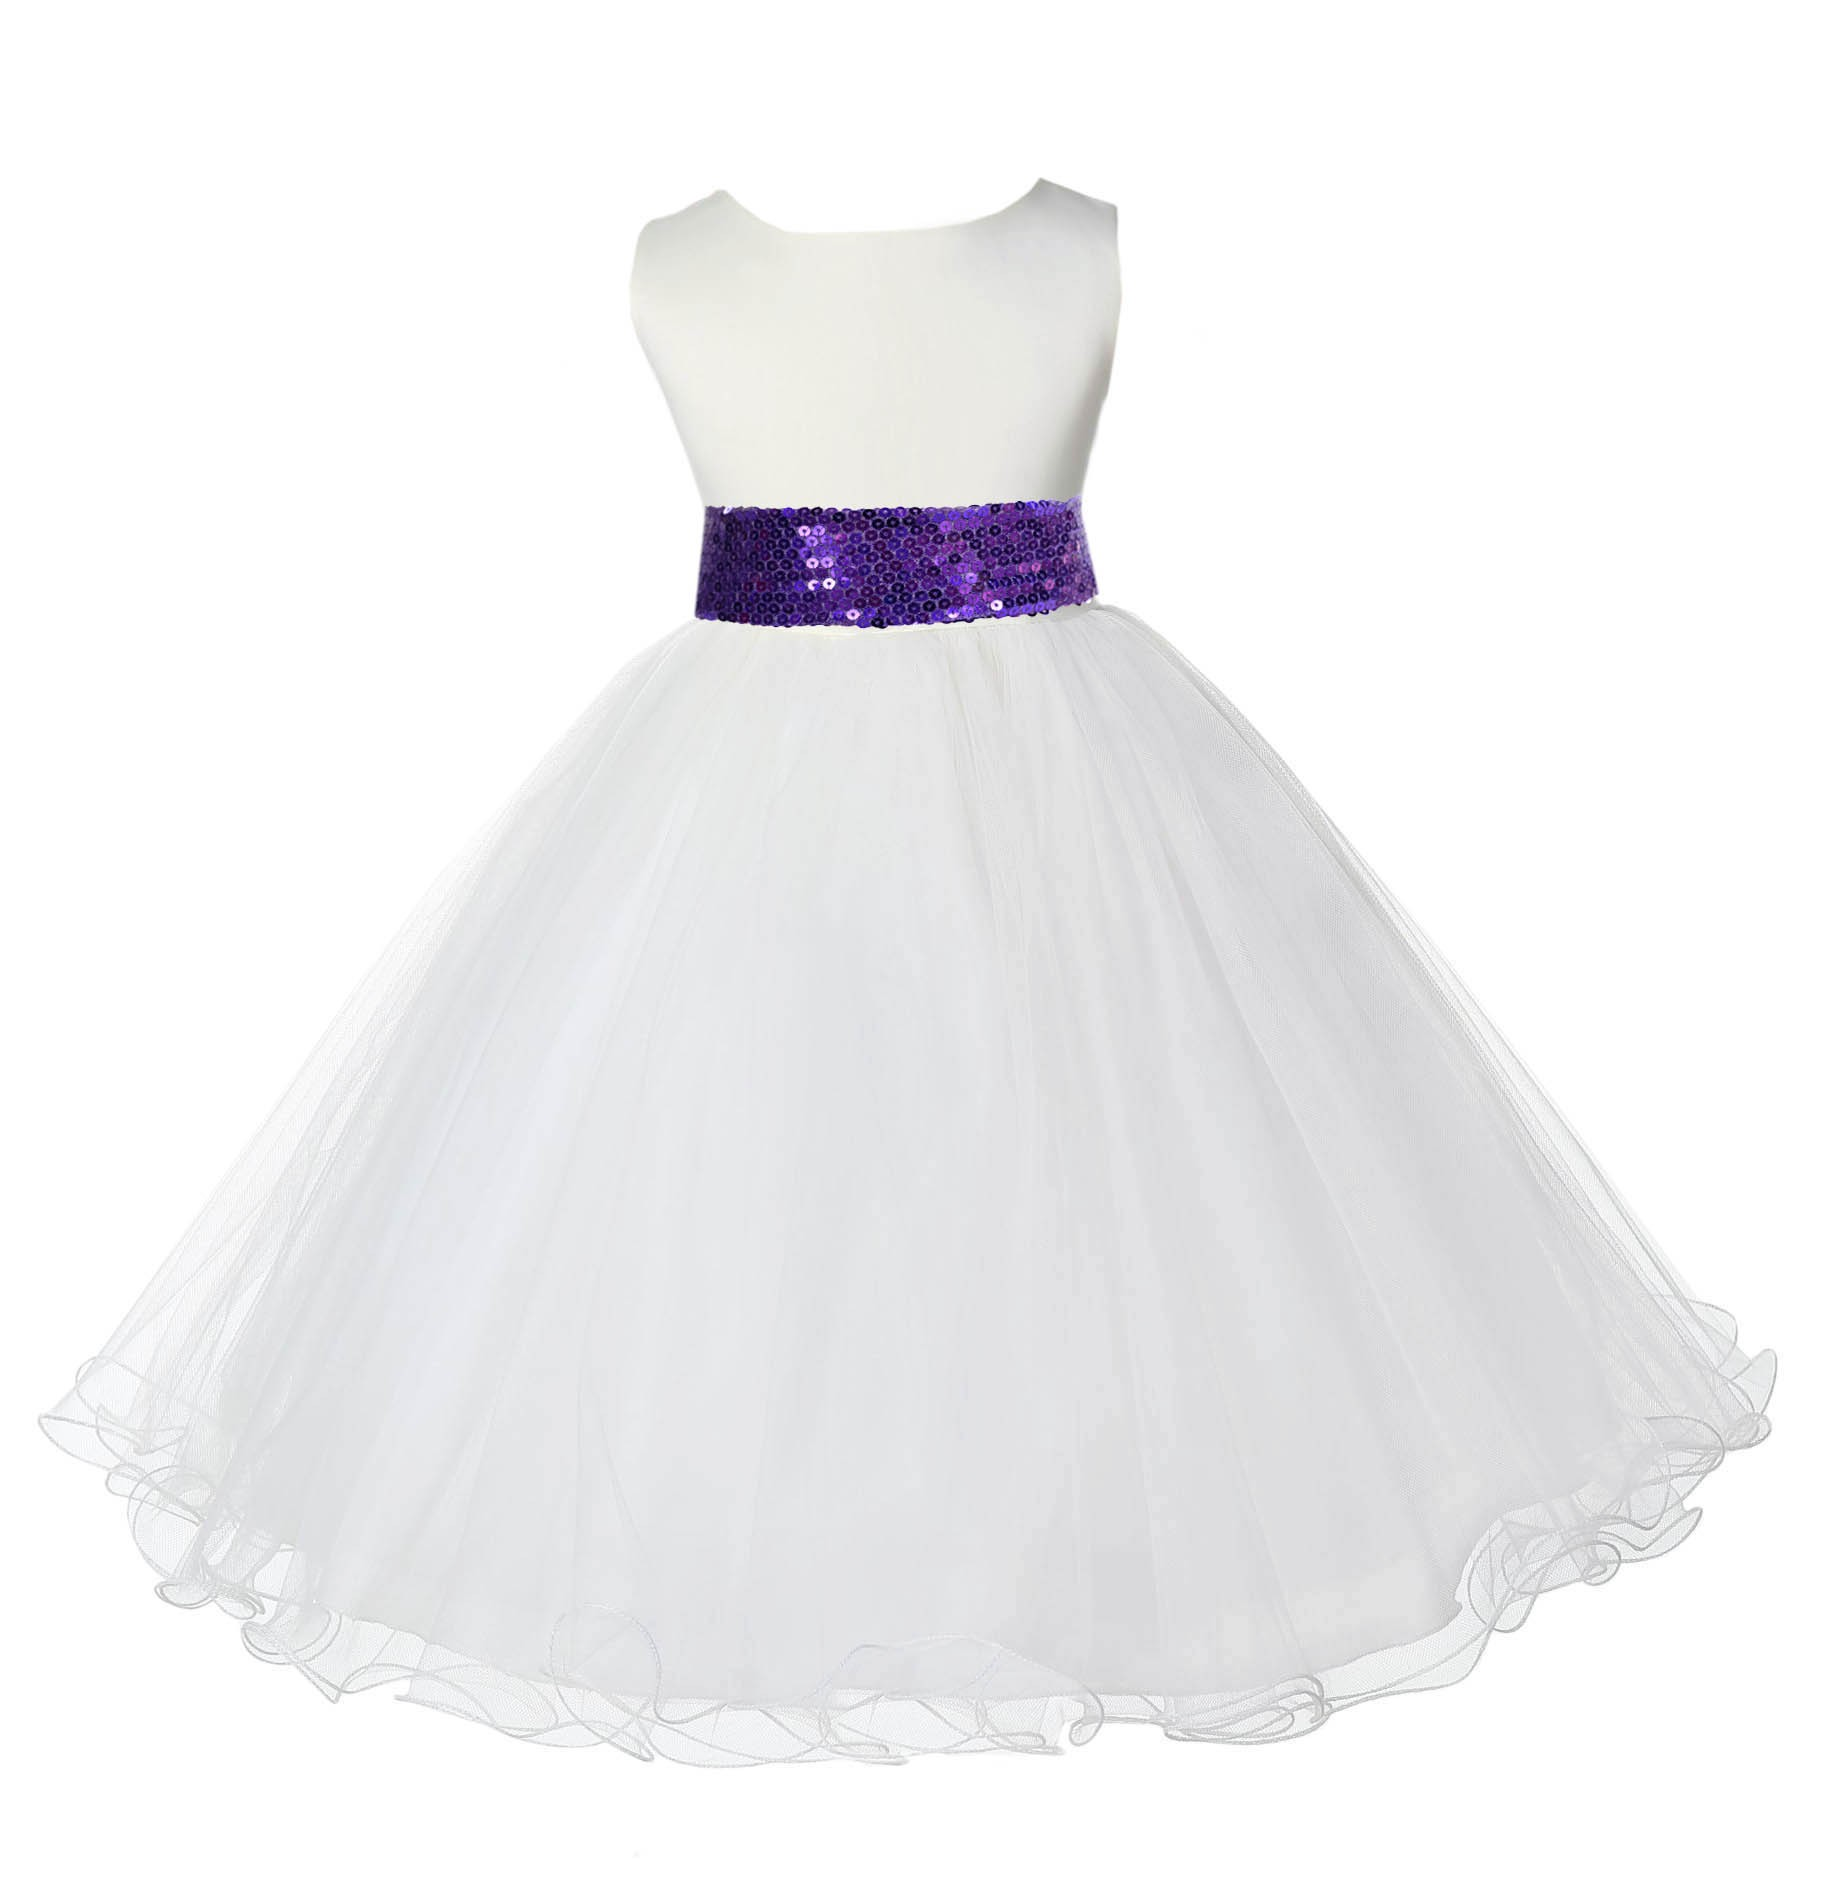 Ivory Tulle Rattail Edge Purple Sequin Sash Flower Girl Dress 829mh